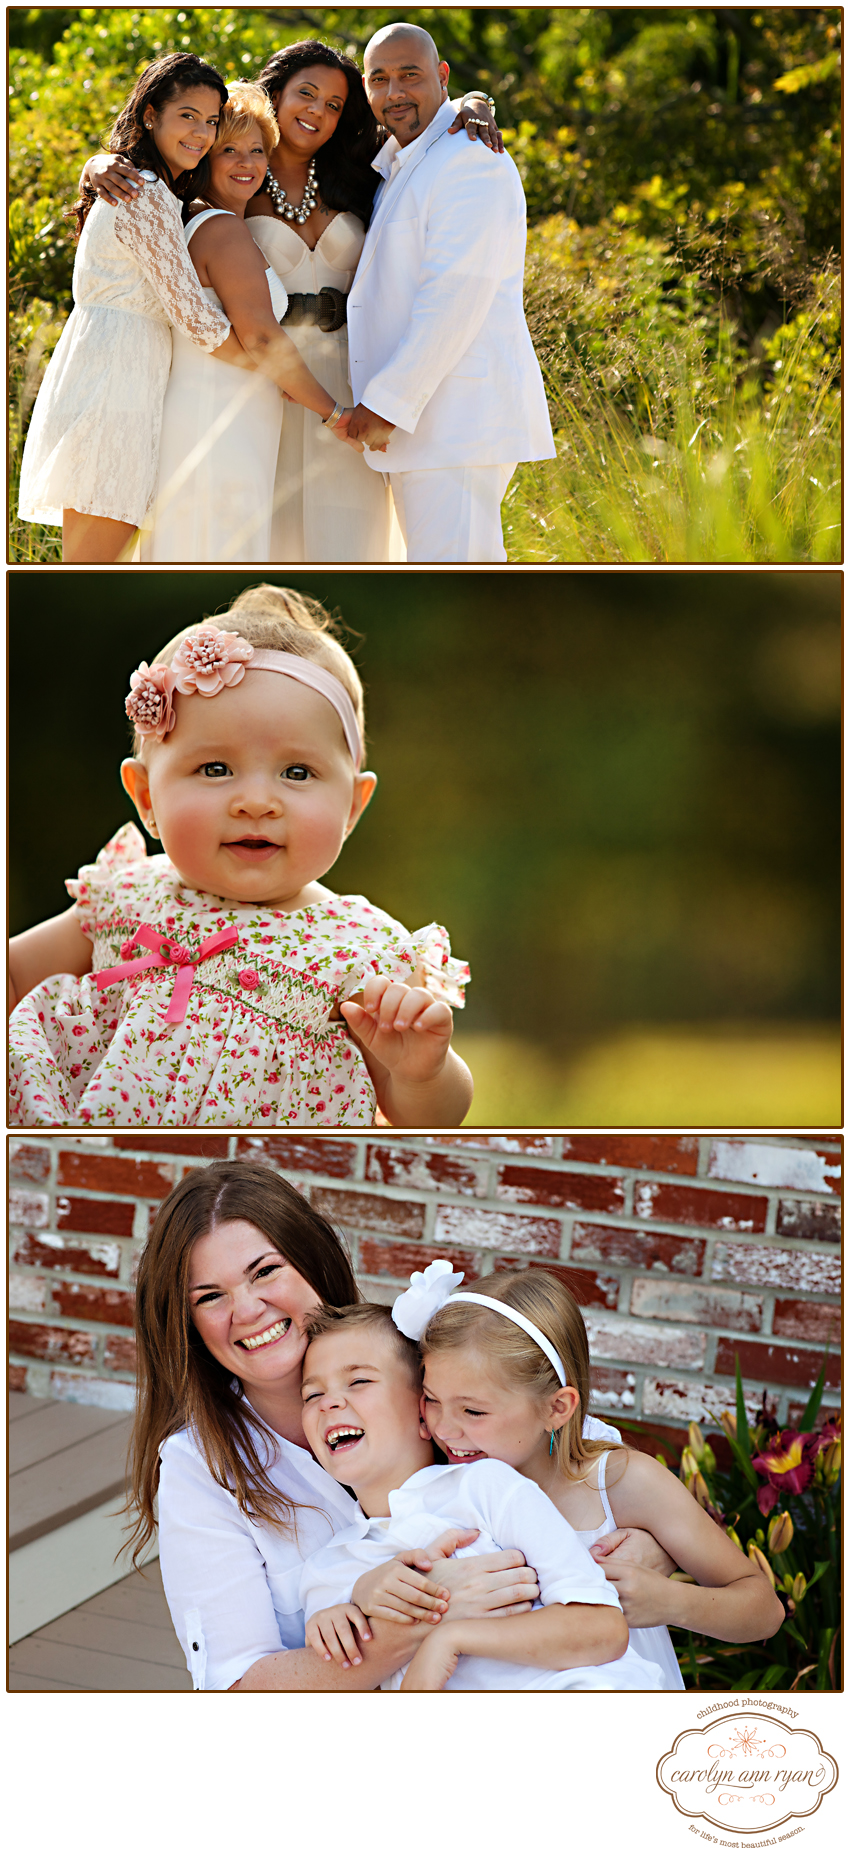 North Carolina Family Portrait Photographer shares Summer Sneak Peeks